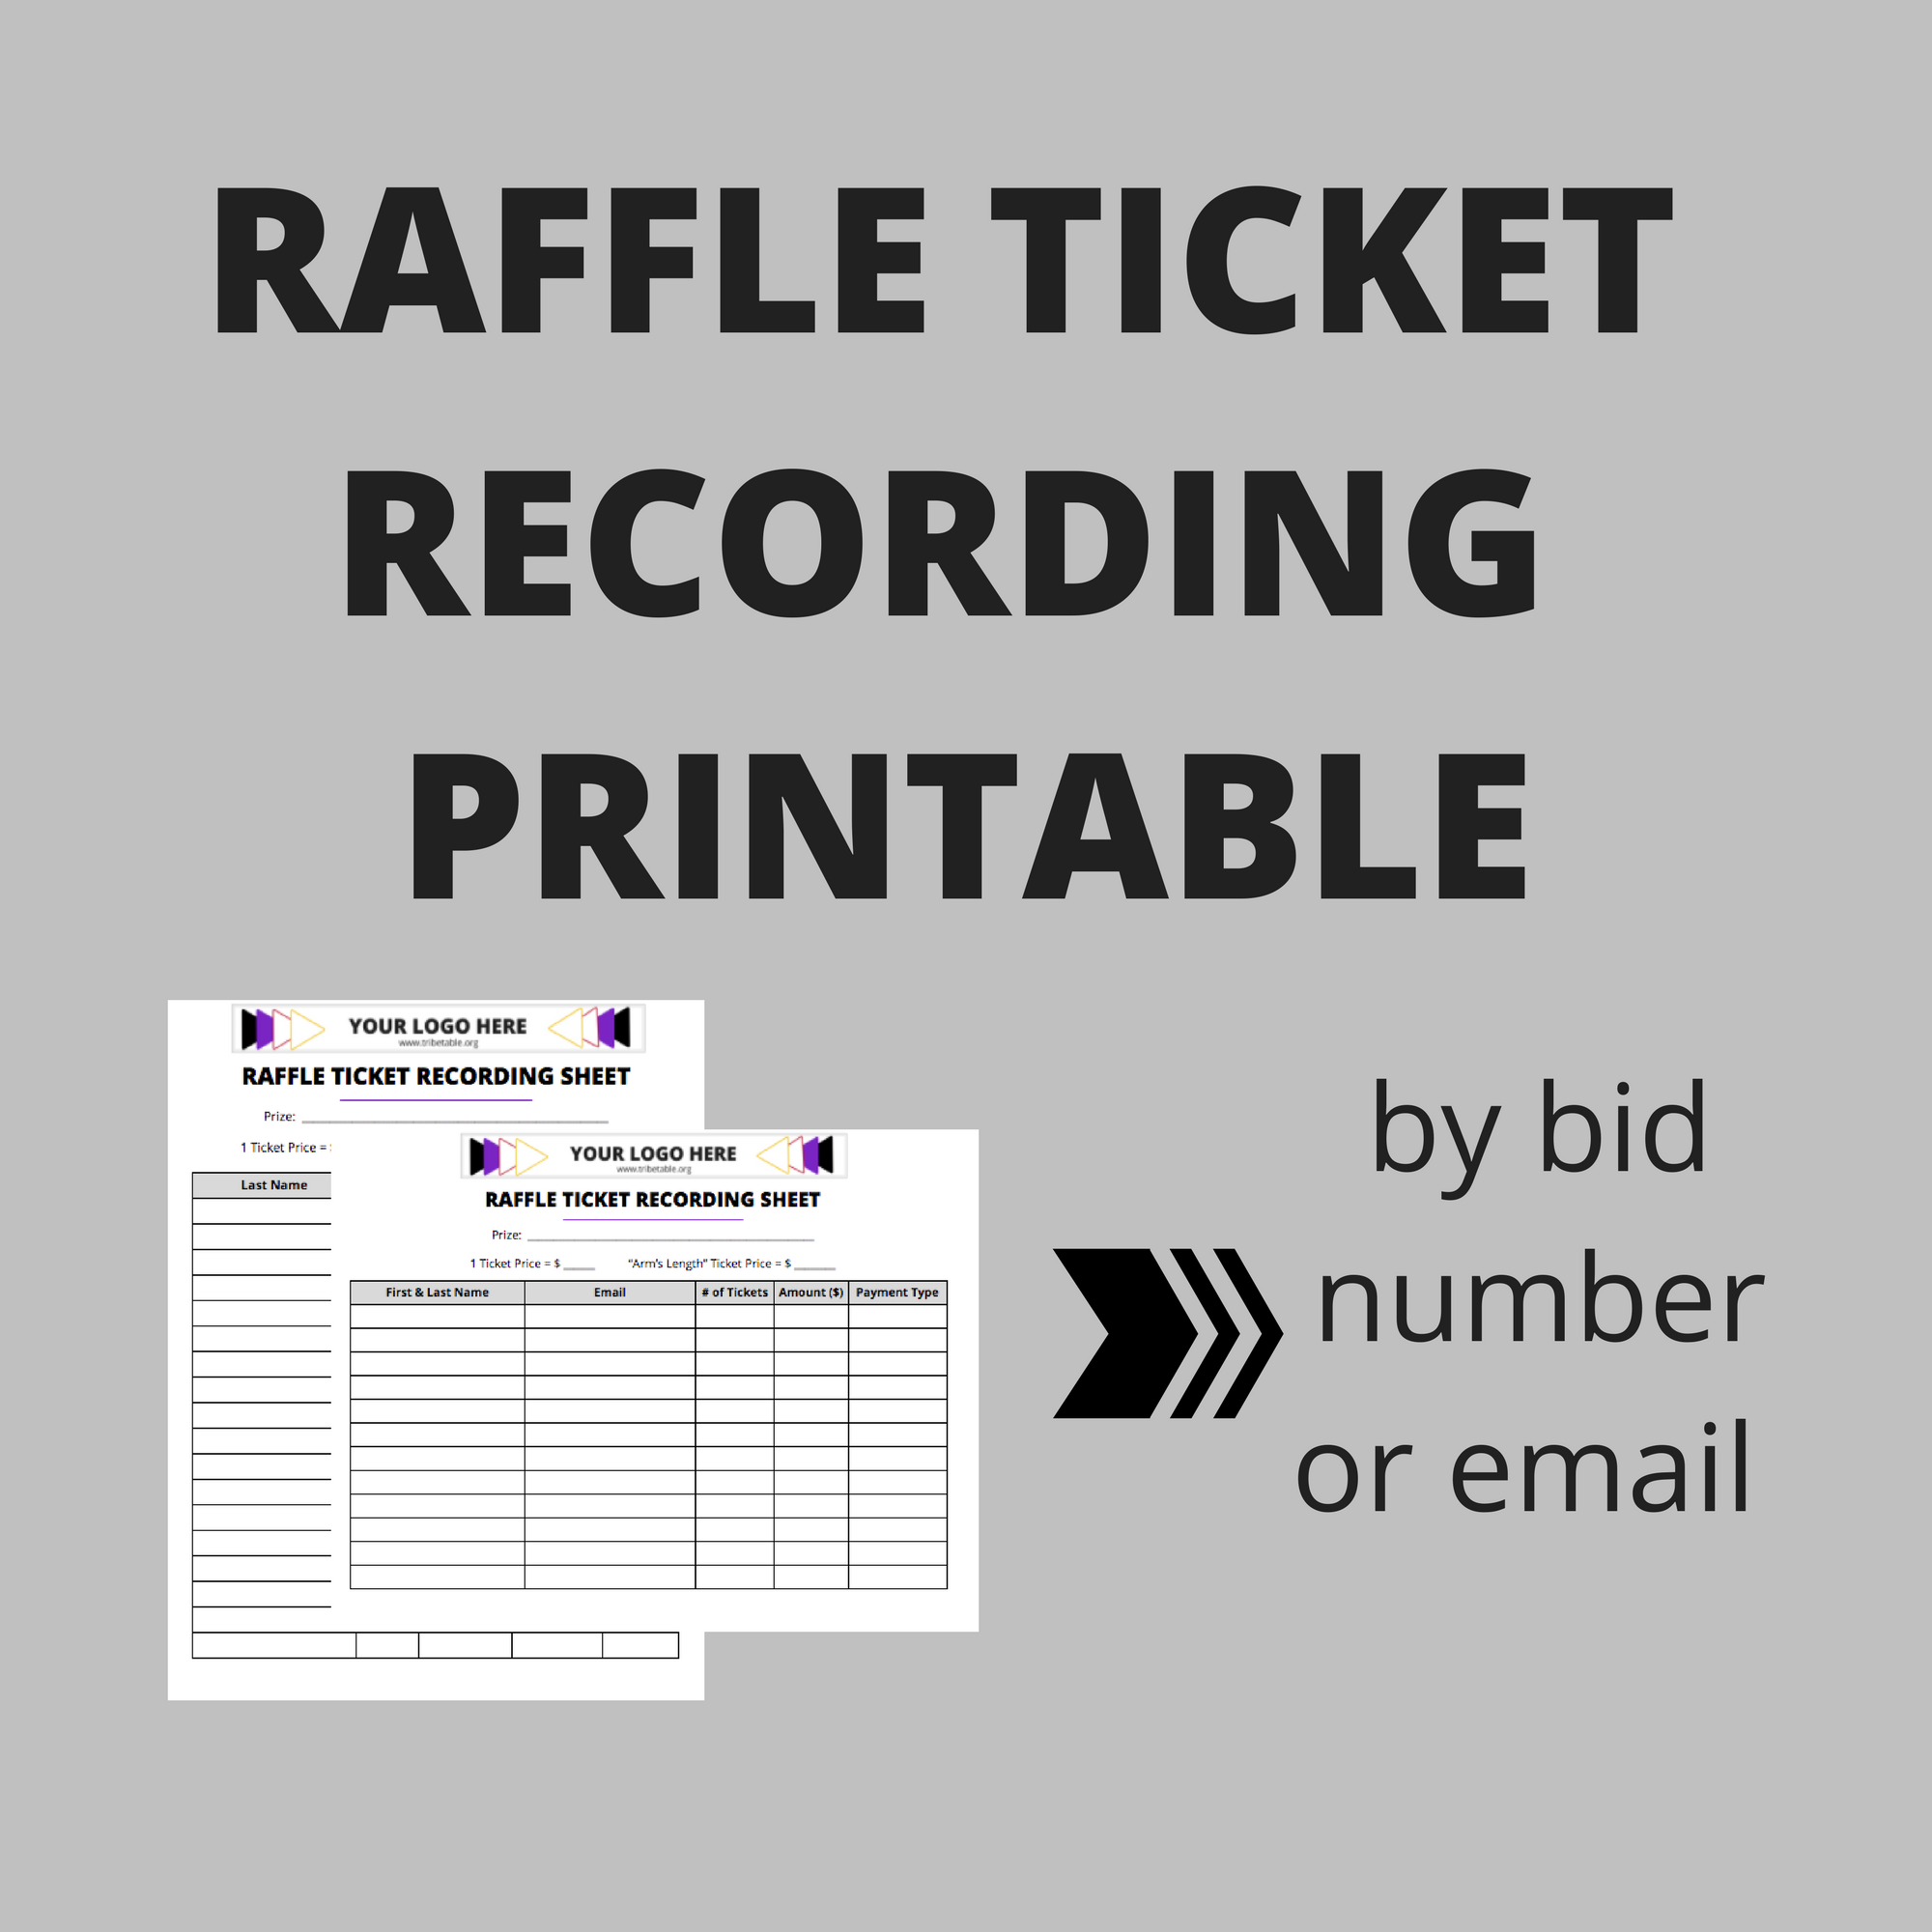 raffle tracking sheet printable.png